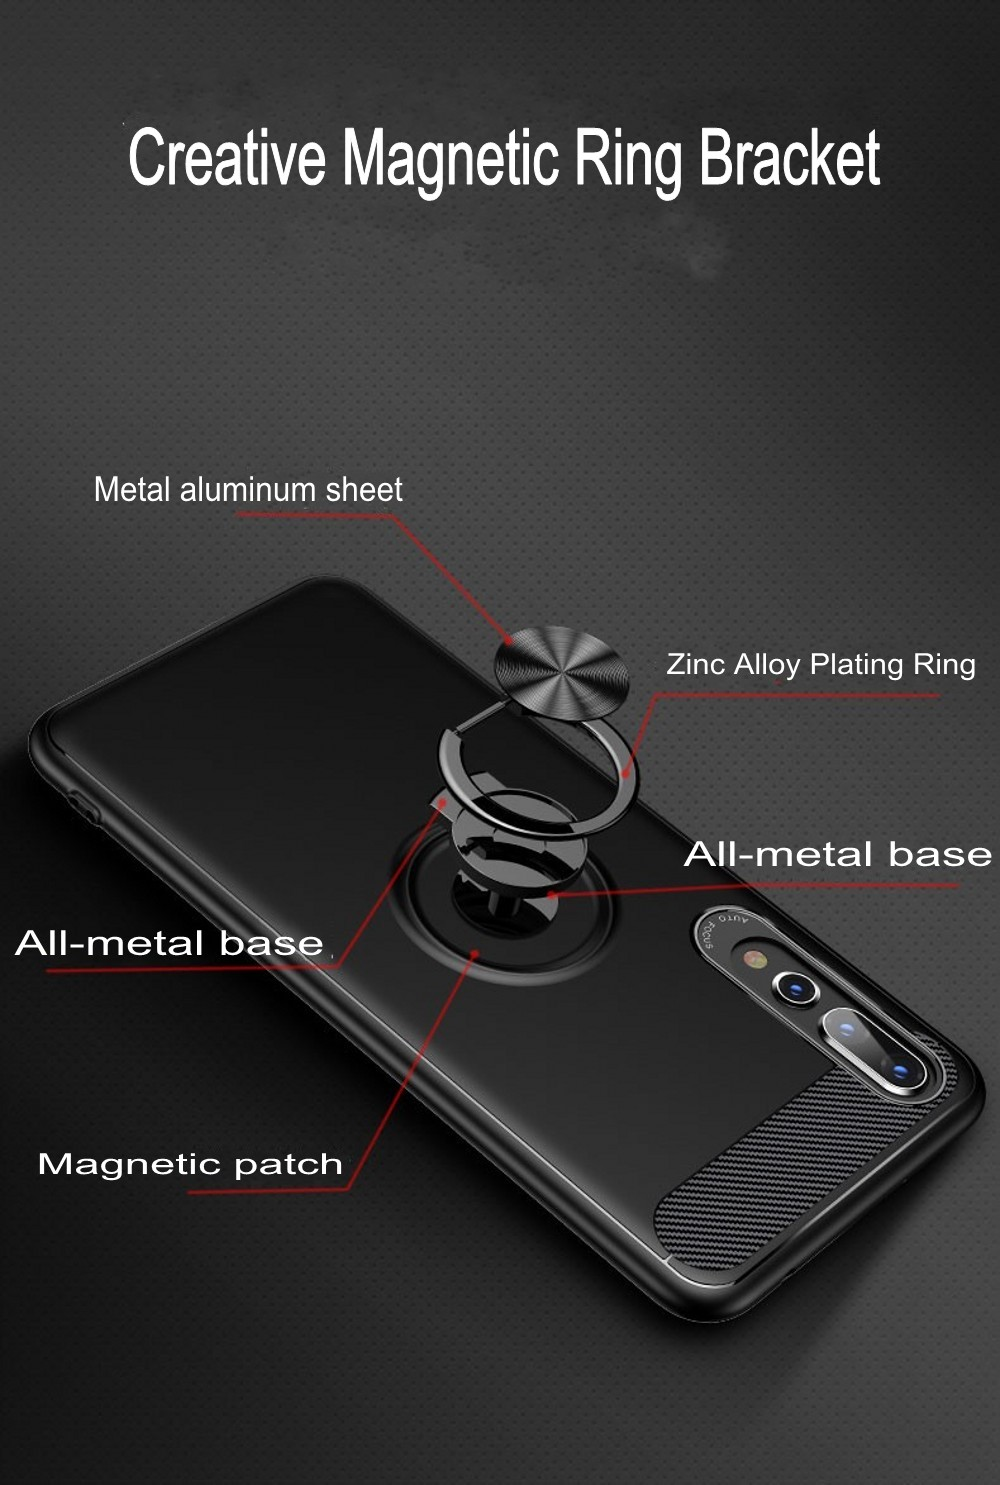 Bakeey 360° Adjustable Metal Ring Magnetic PC Protective Case for Huawei P20 / P20 Lite / P20 Pro